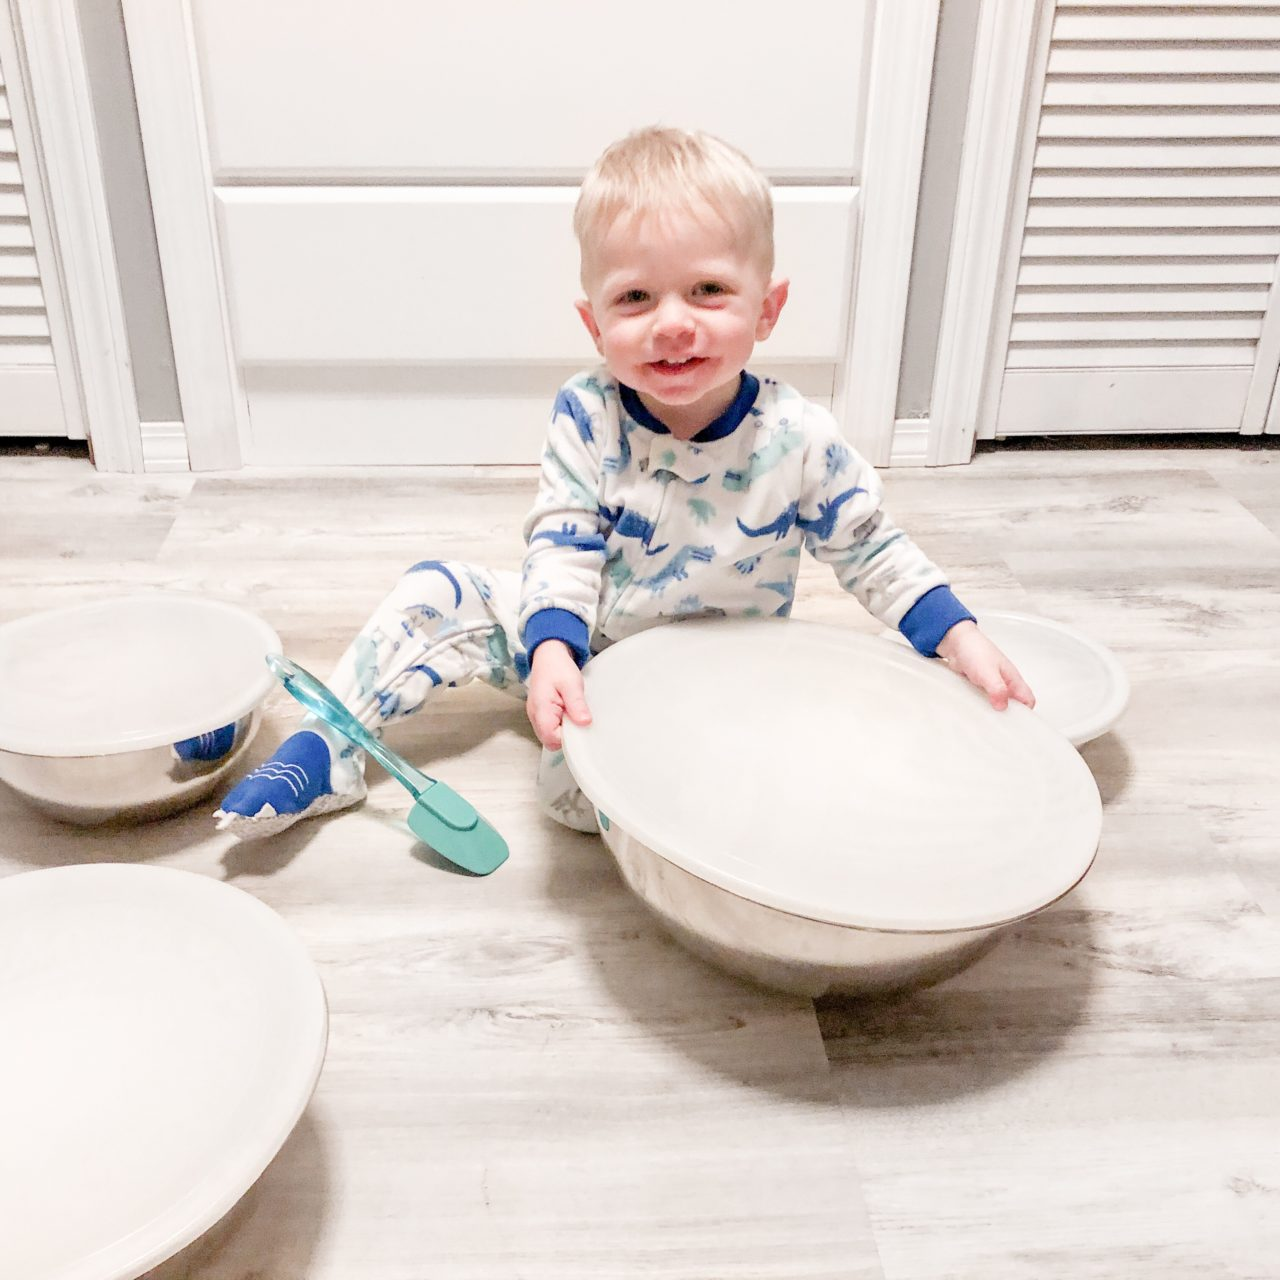 Interactive Play with Nesting Bowls and Spatulas